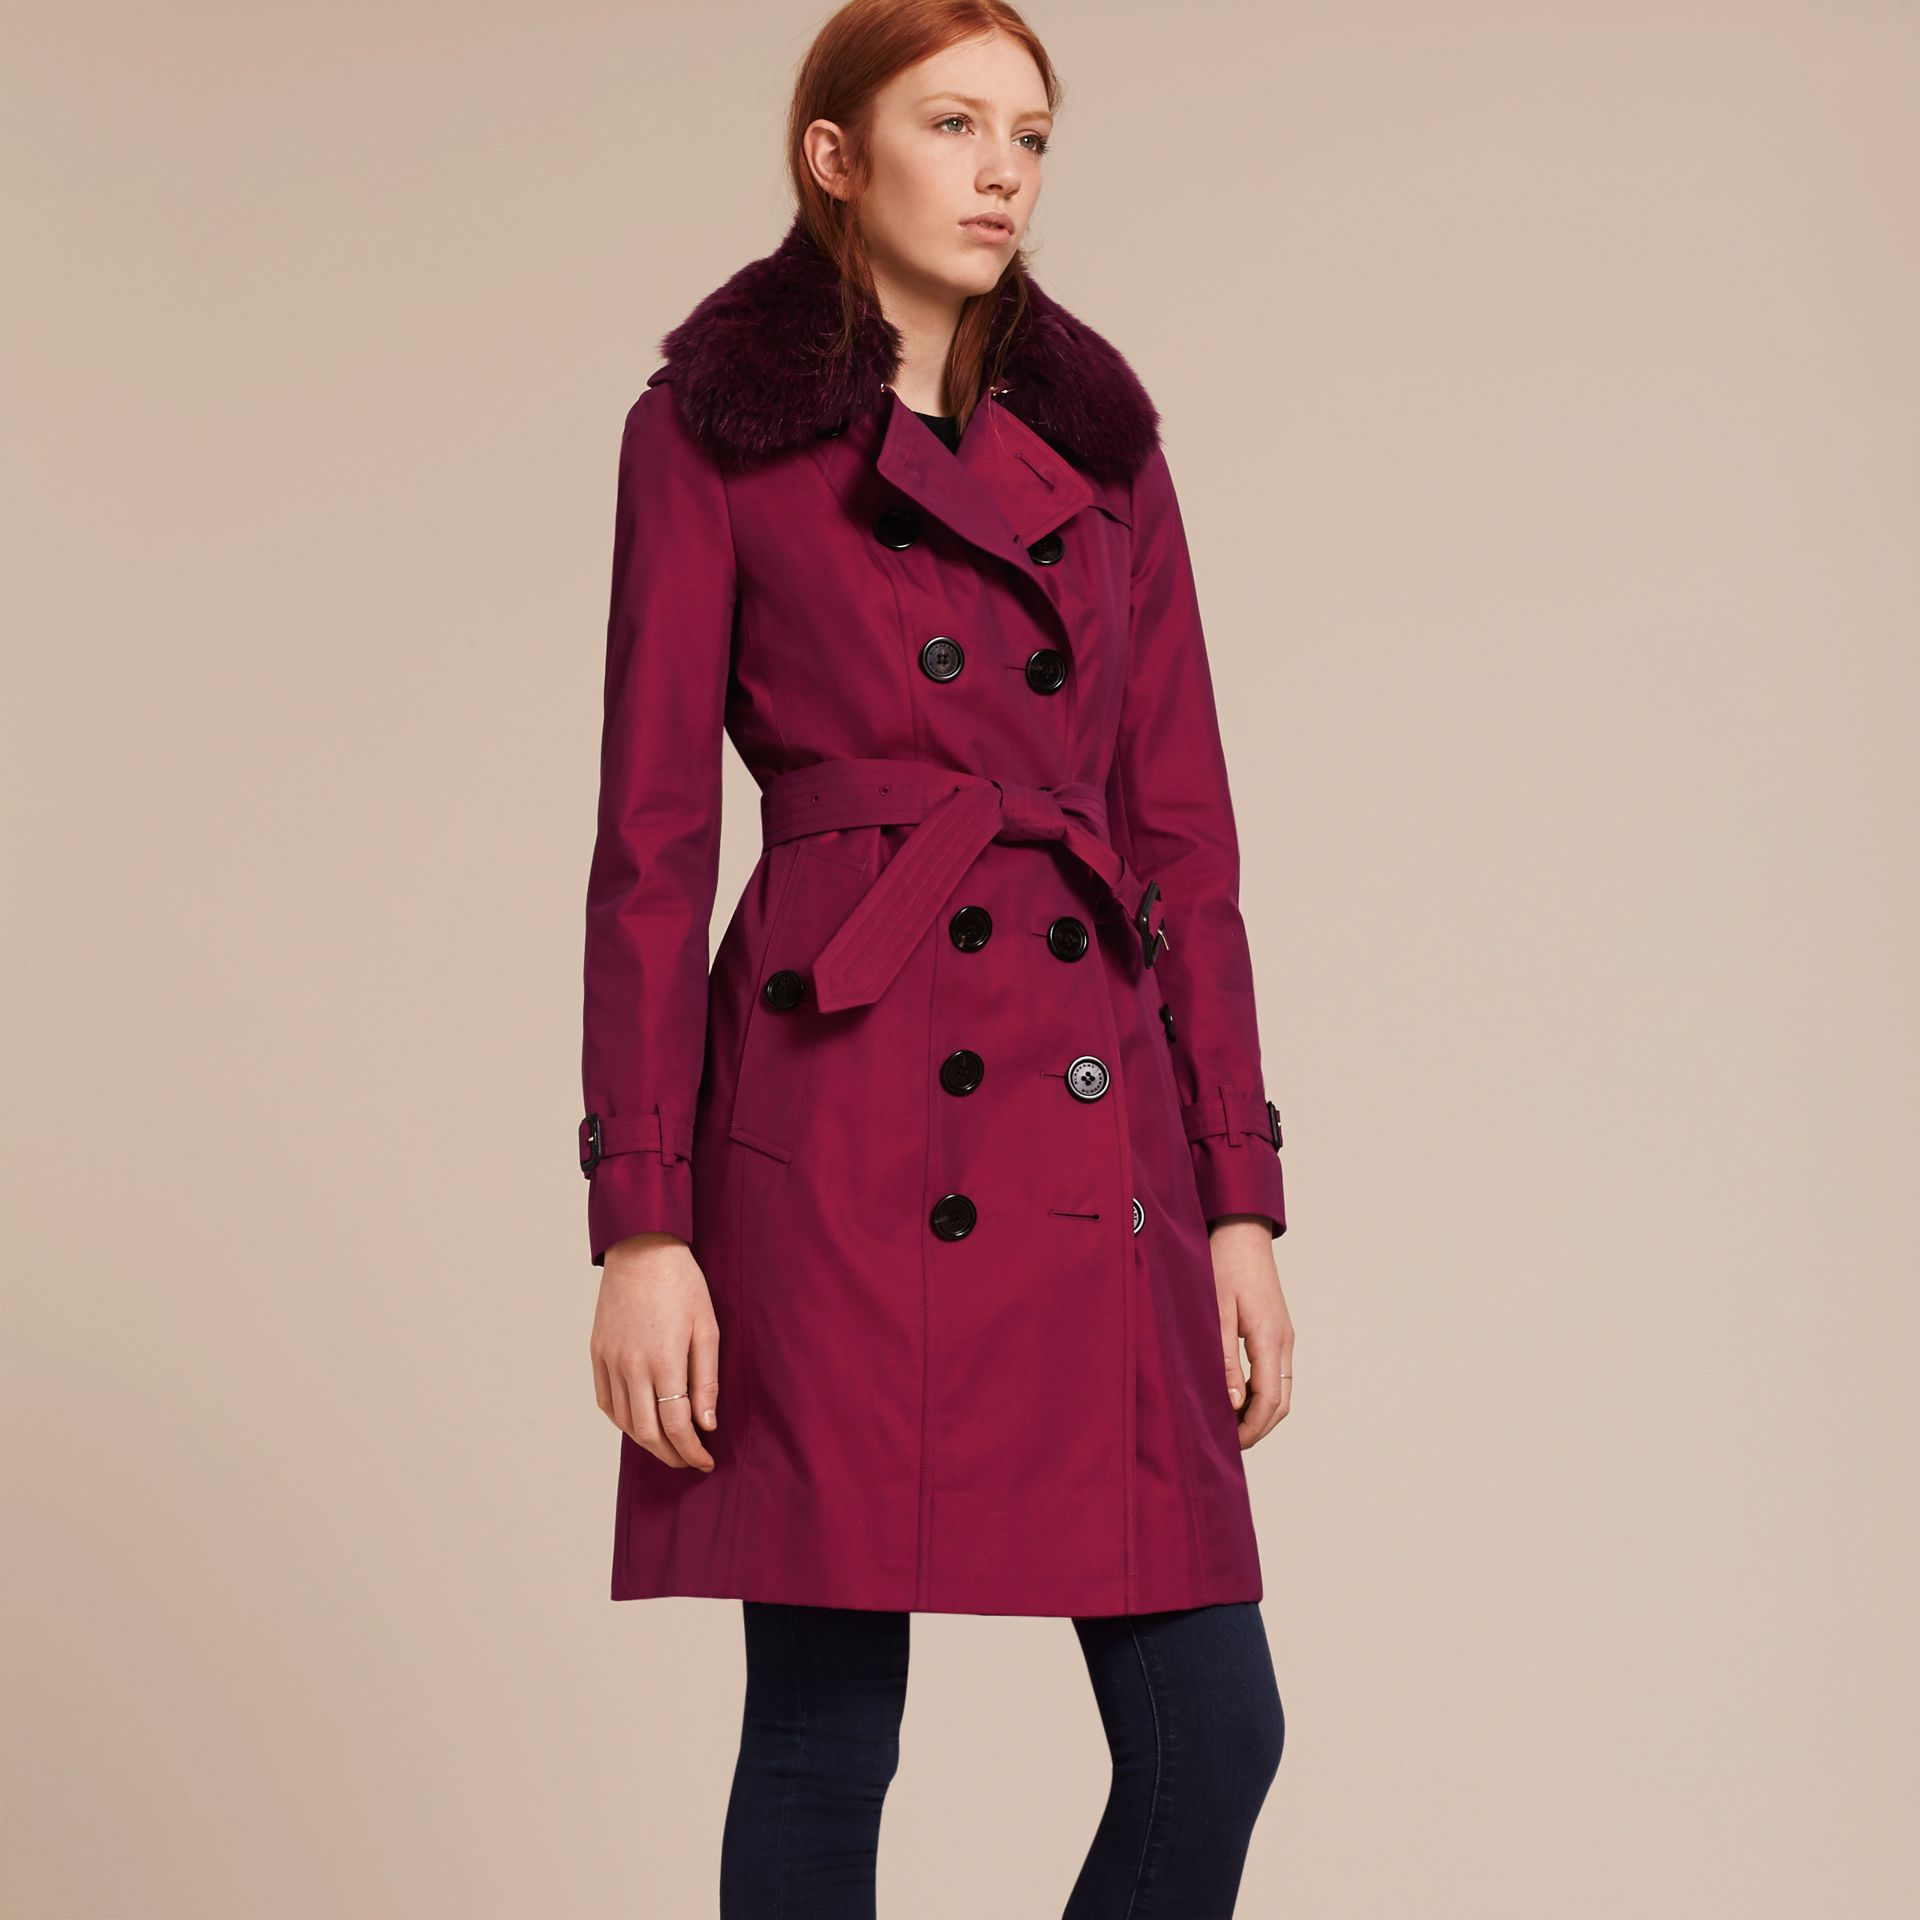 Crimson Trench-coat en gabardine de coton avec bordure en fourrure amovible Crimson - photo de la galerie 7